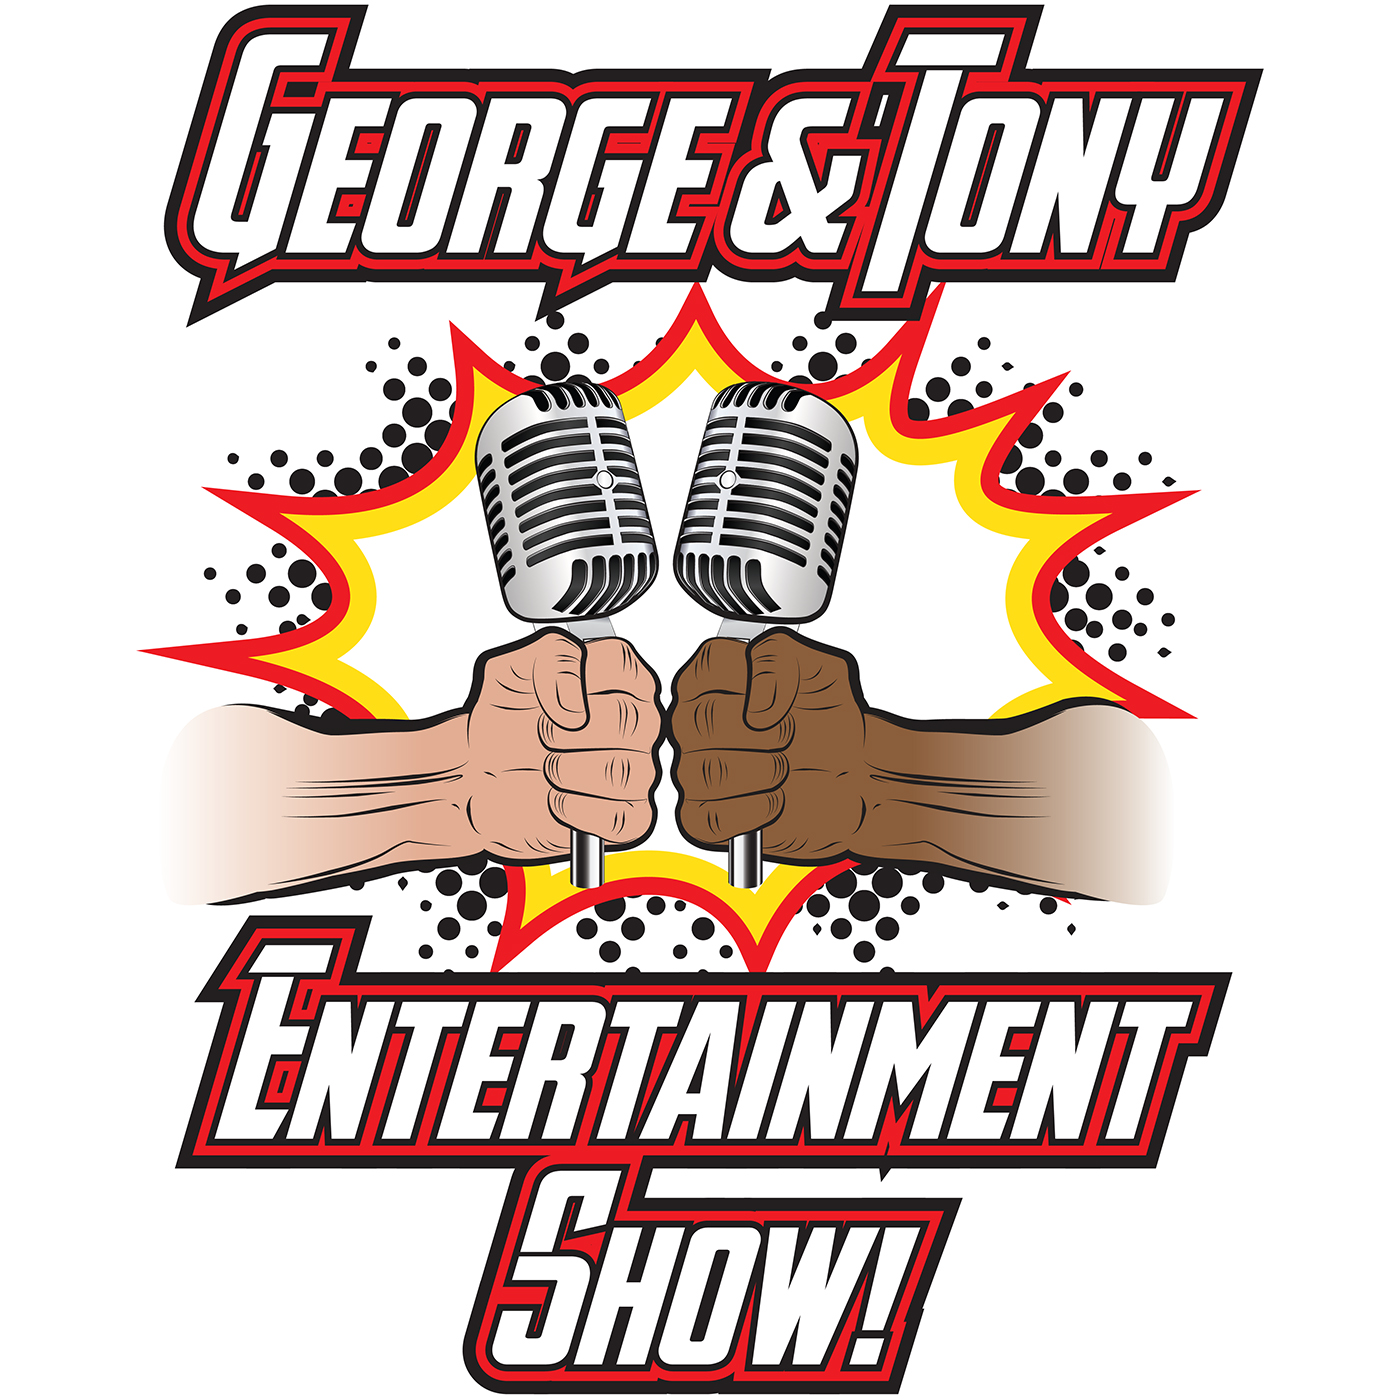 George and Tony Entertainment Show #139